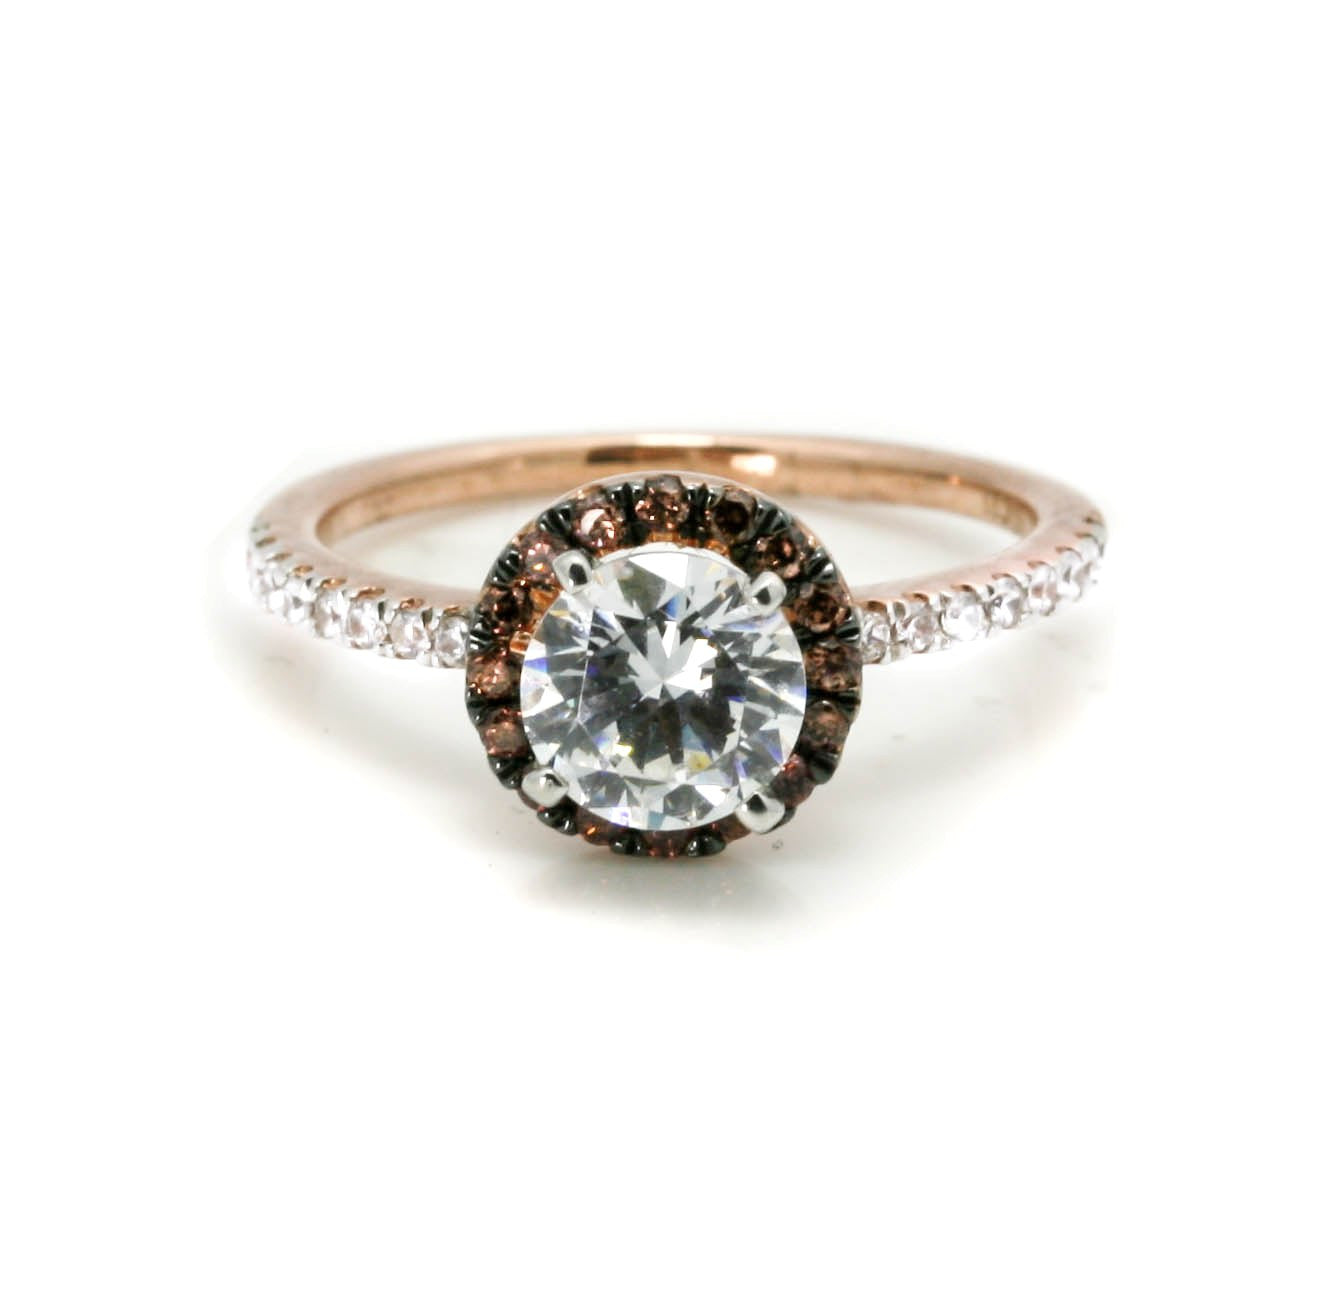 1 Carat Forever Brilliant Moissanite, Chocolate Brown Diamond Halo, White Diamond Accent Stones, Rose Gold, Engagement Ring - FB94639